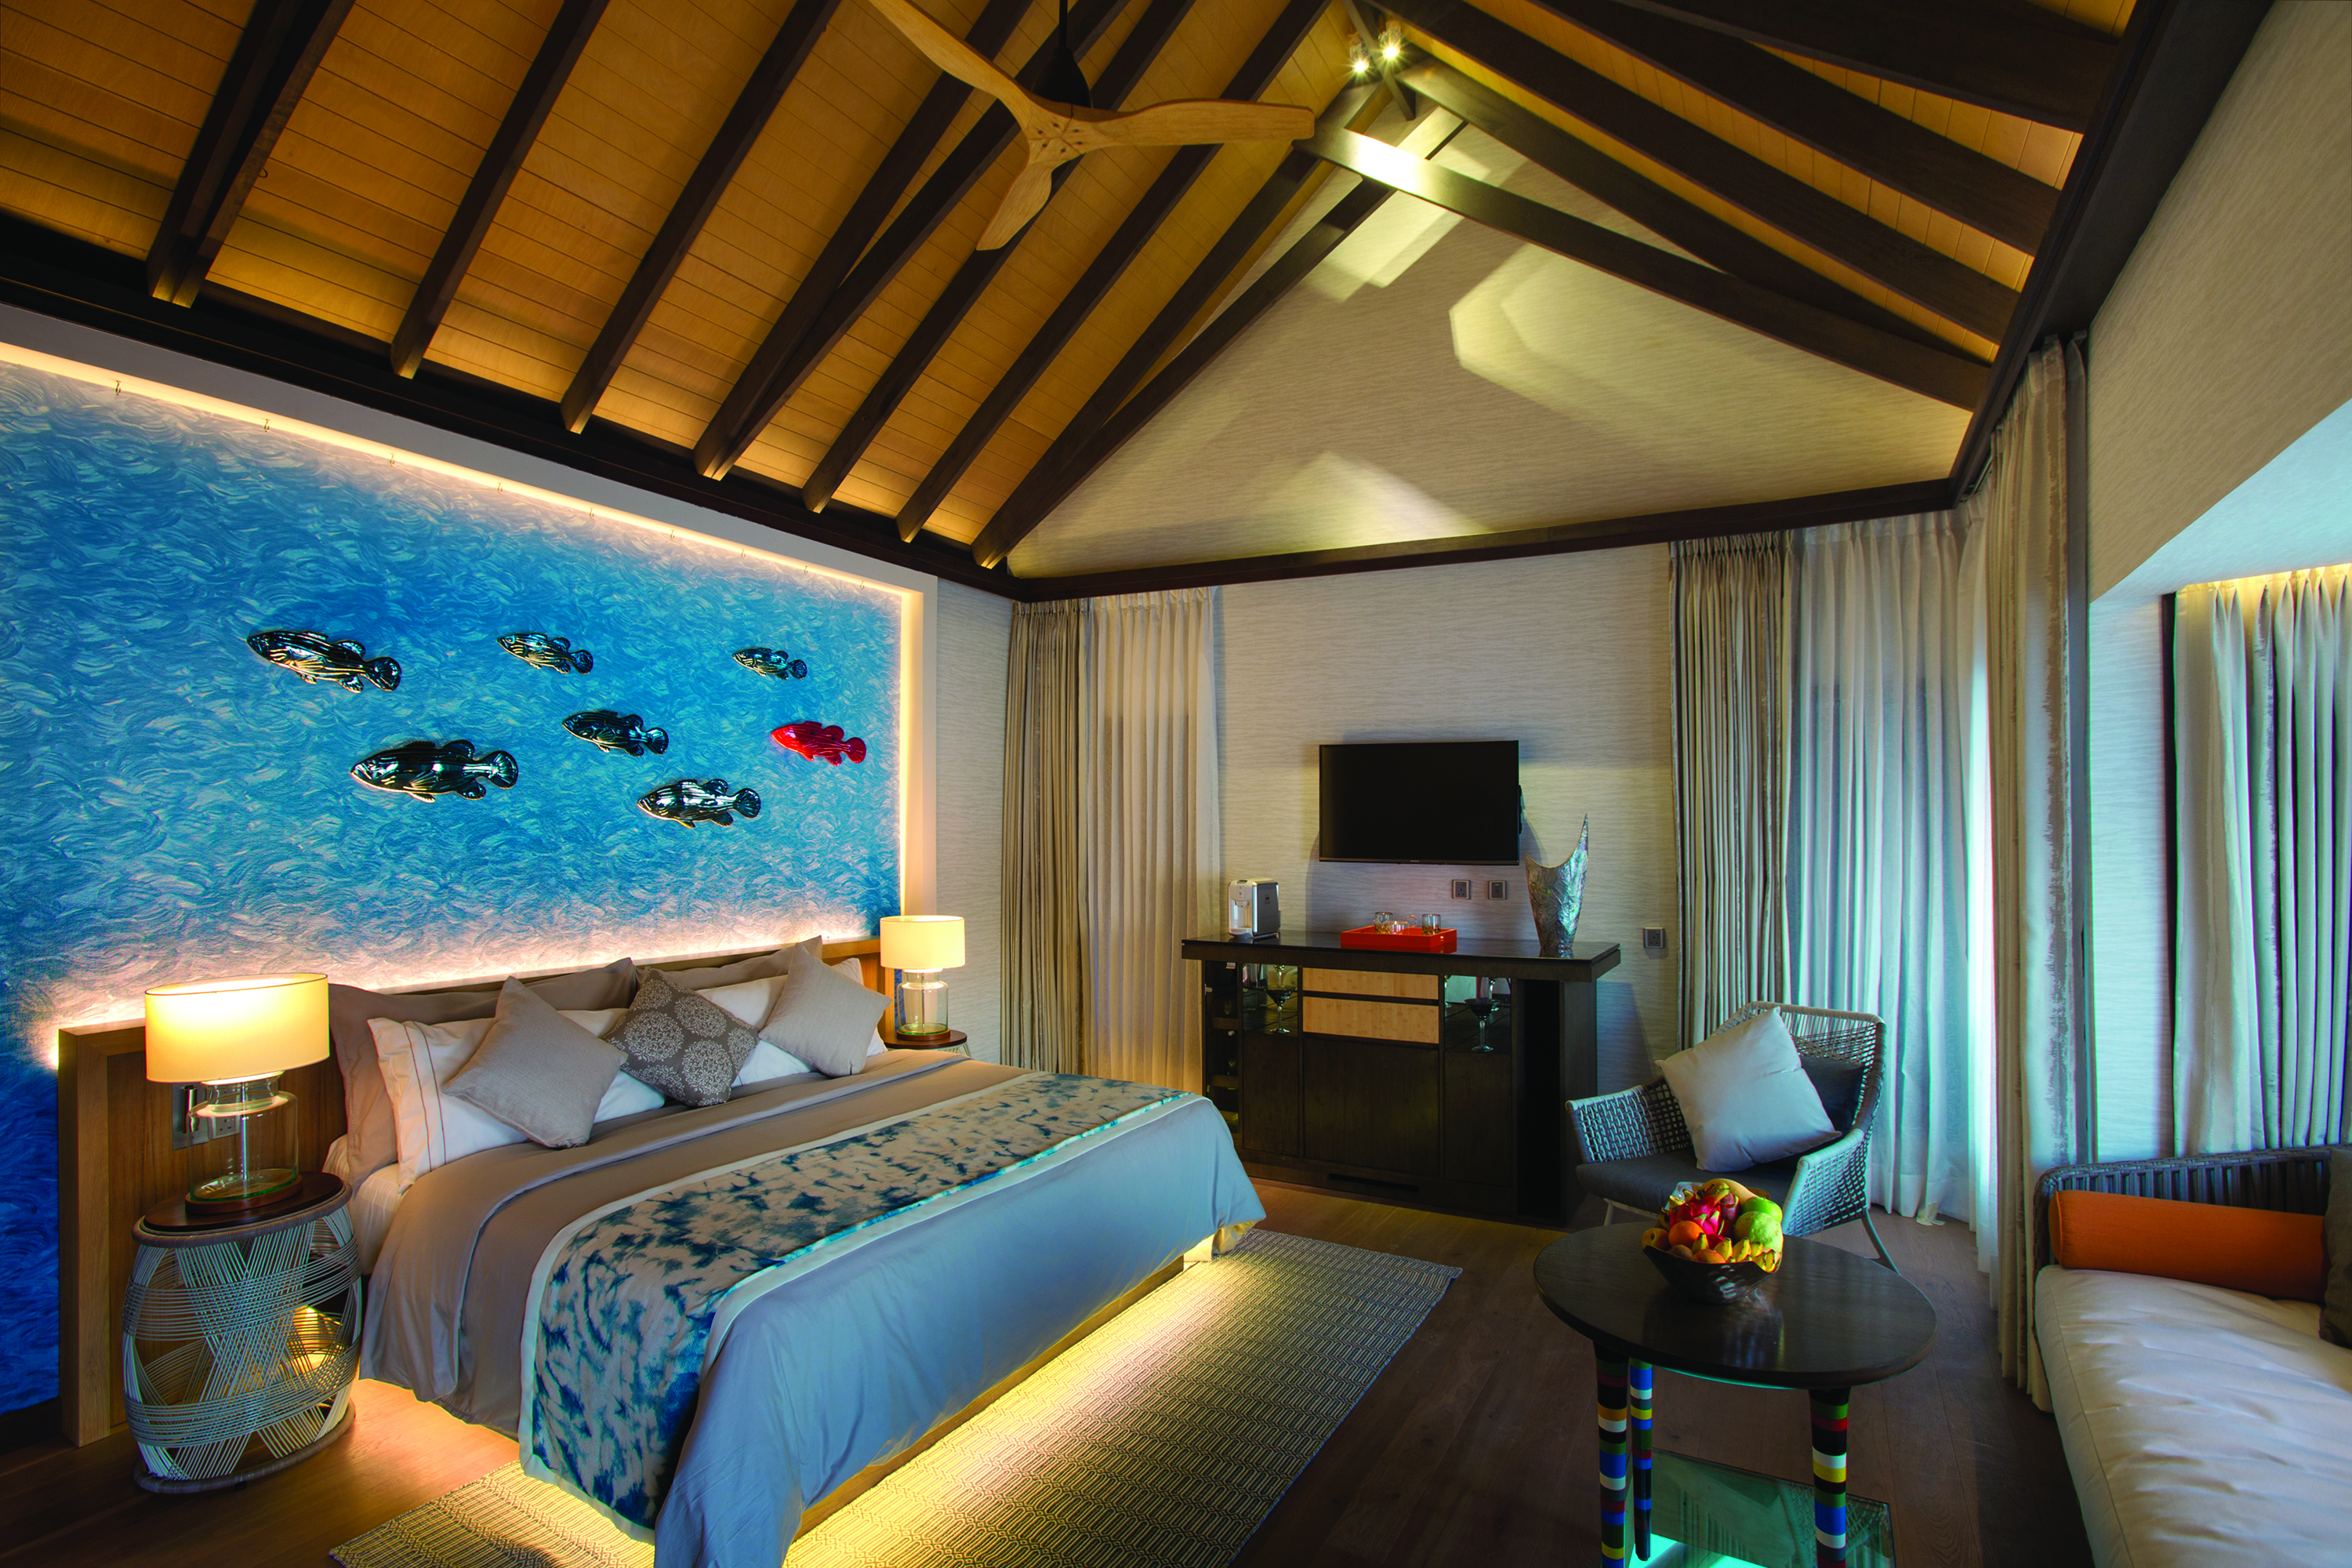 OZEN BY ATMOSPHERE - WIND VILLA WITH POOL - BEDROOM INTERIOR